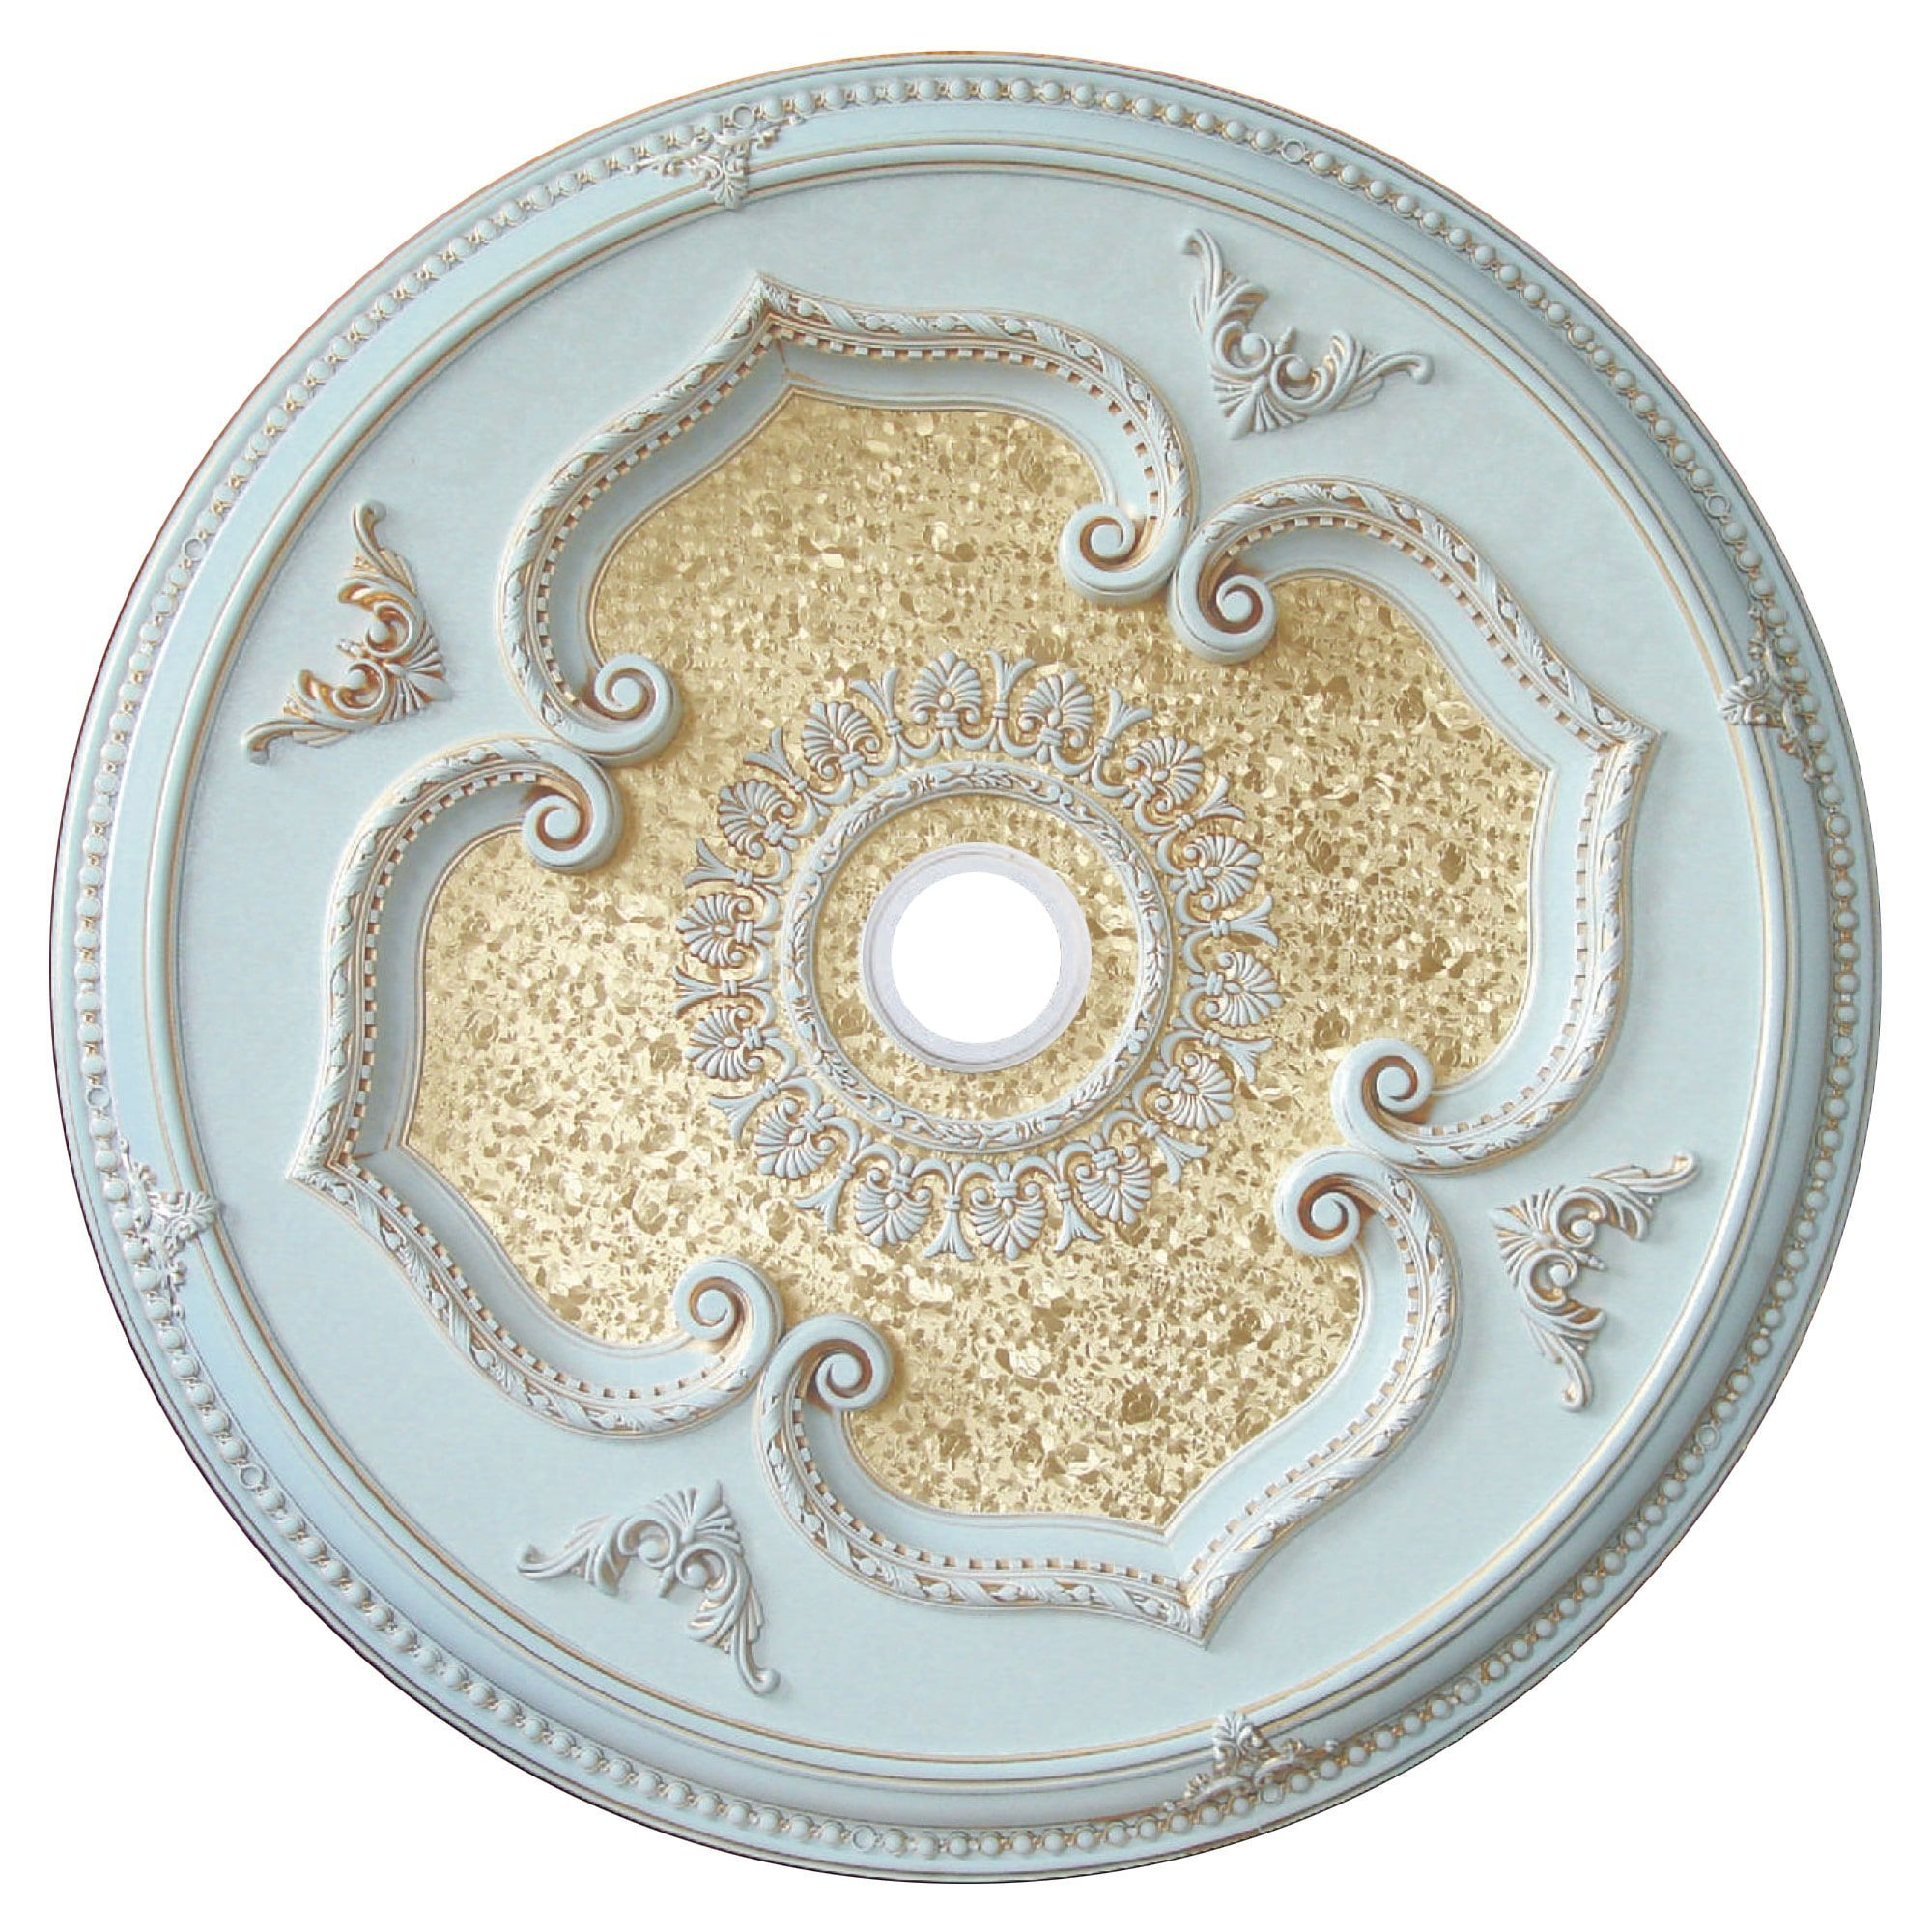 do it raising yourself upholstered ceiling up cover medallion medalions blog rubies ceilings